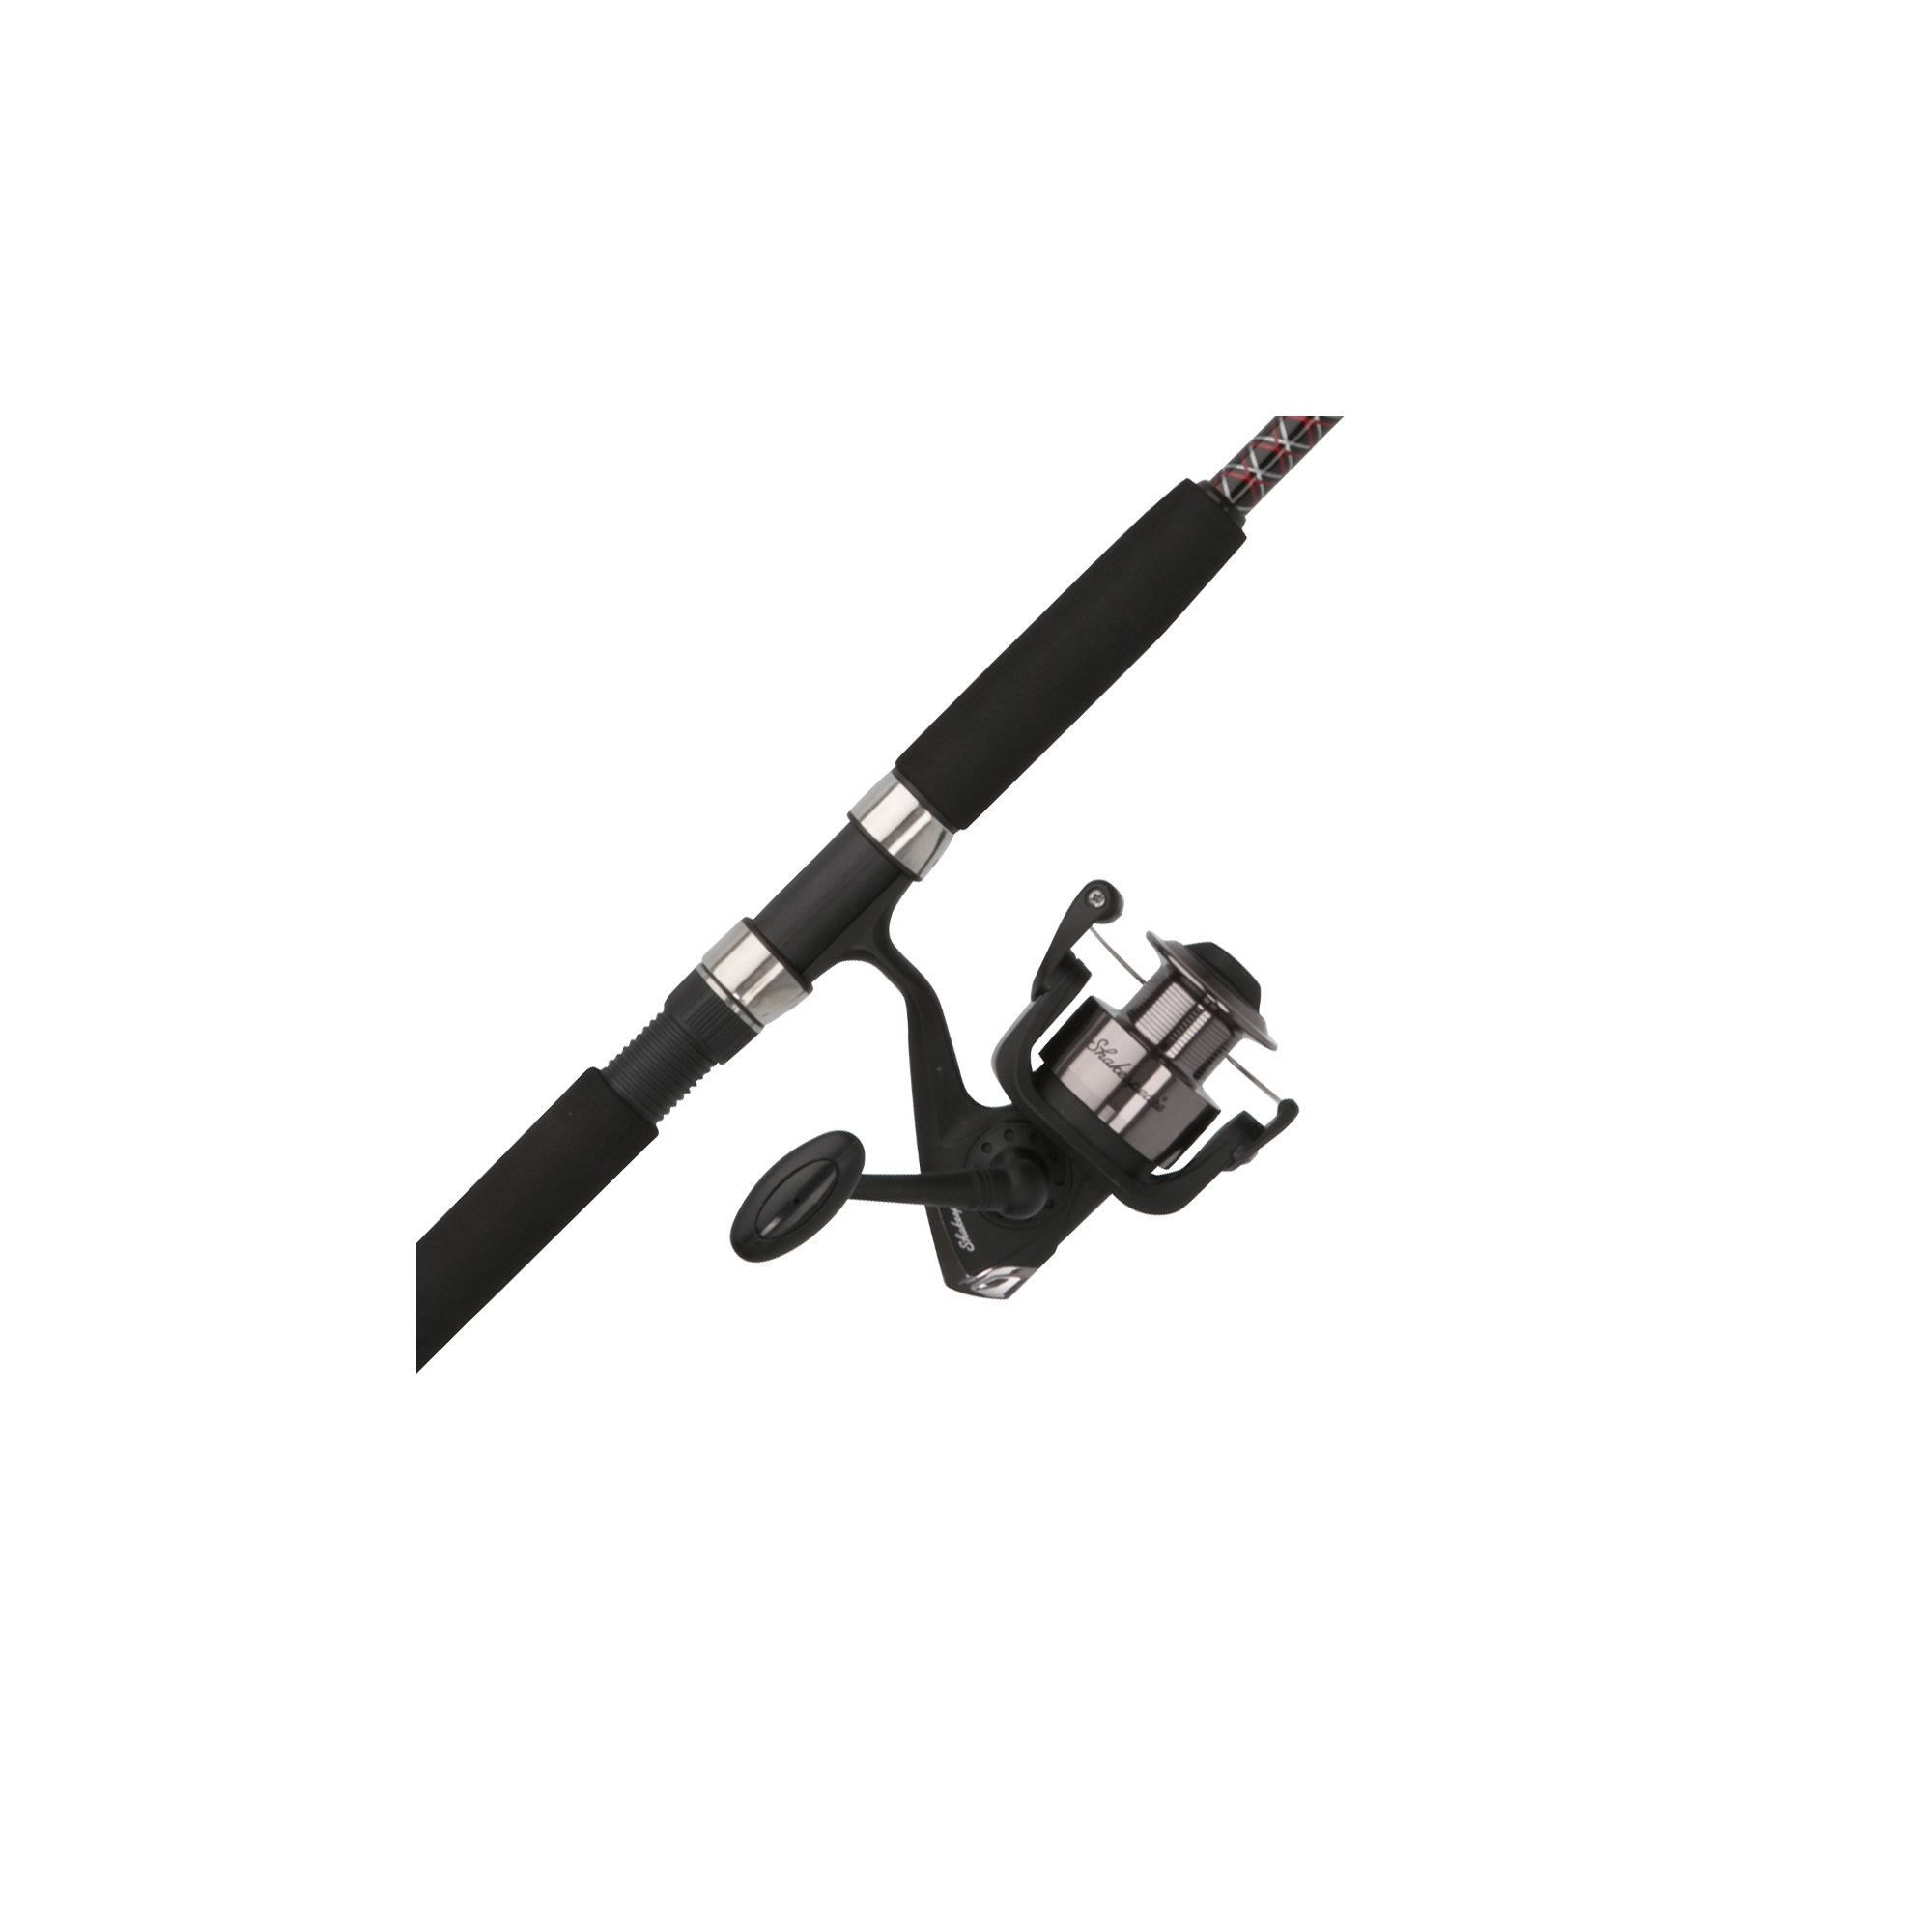 Shakespeare Ugly Stik Bigwater Fishing Rod and Spinning Reel Combo by UglyStik